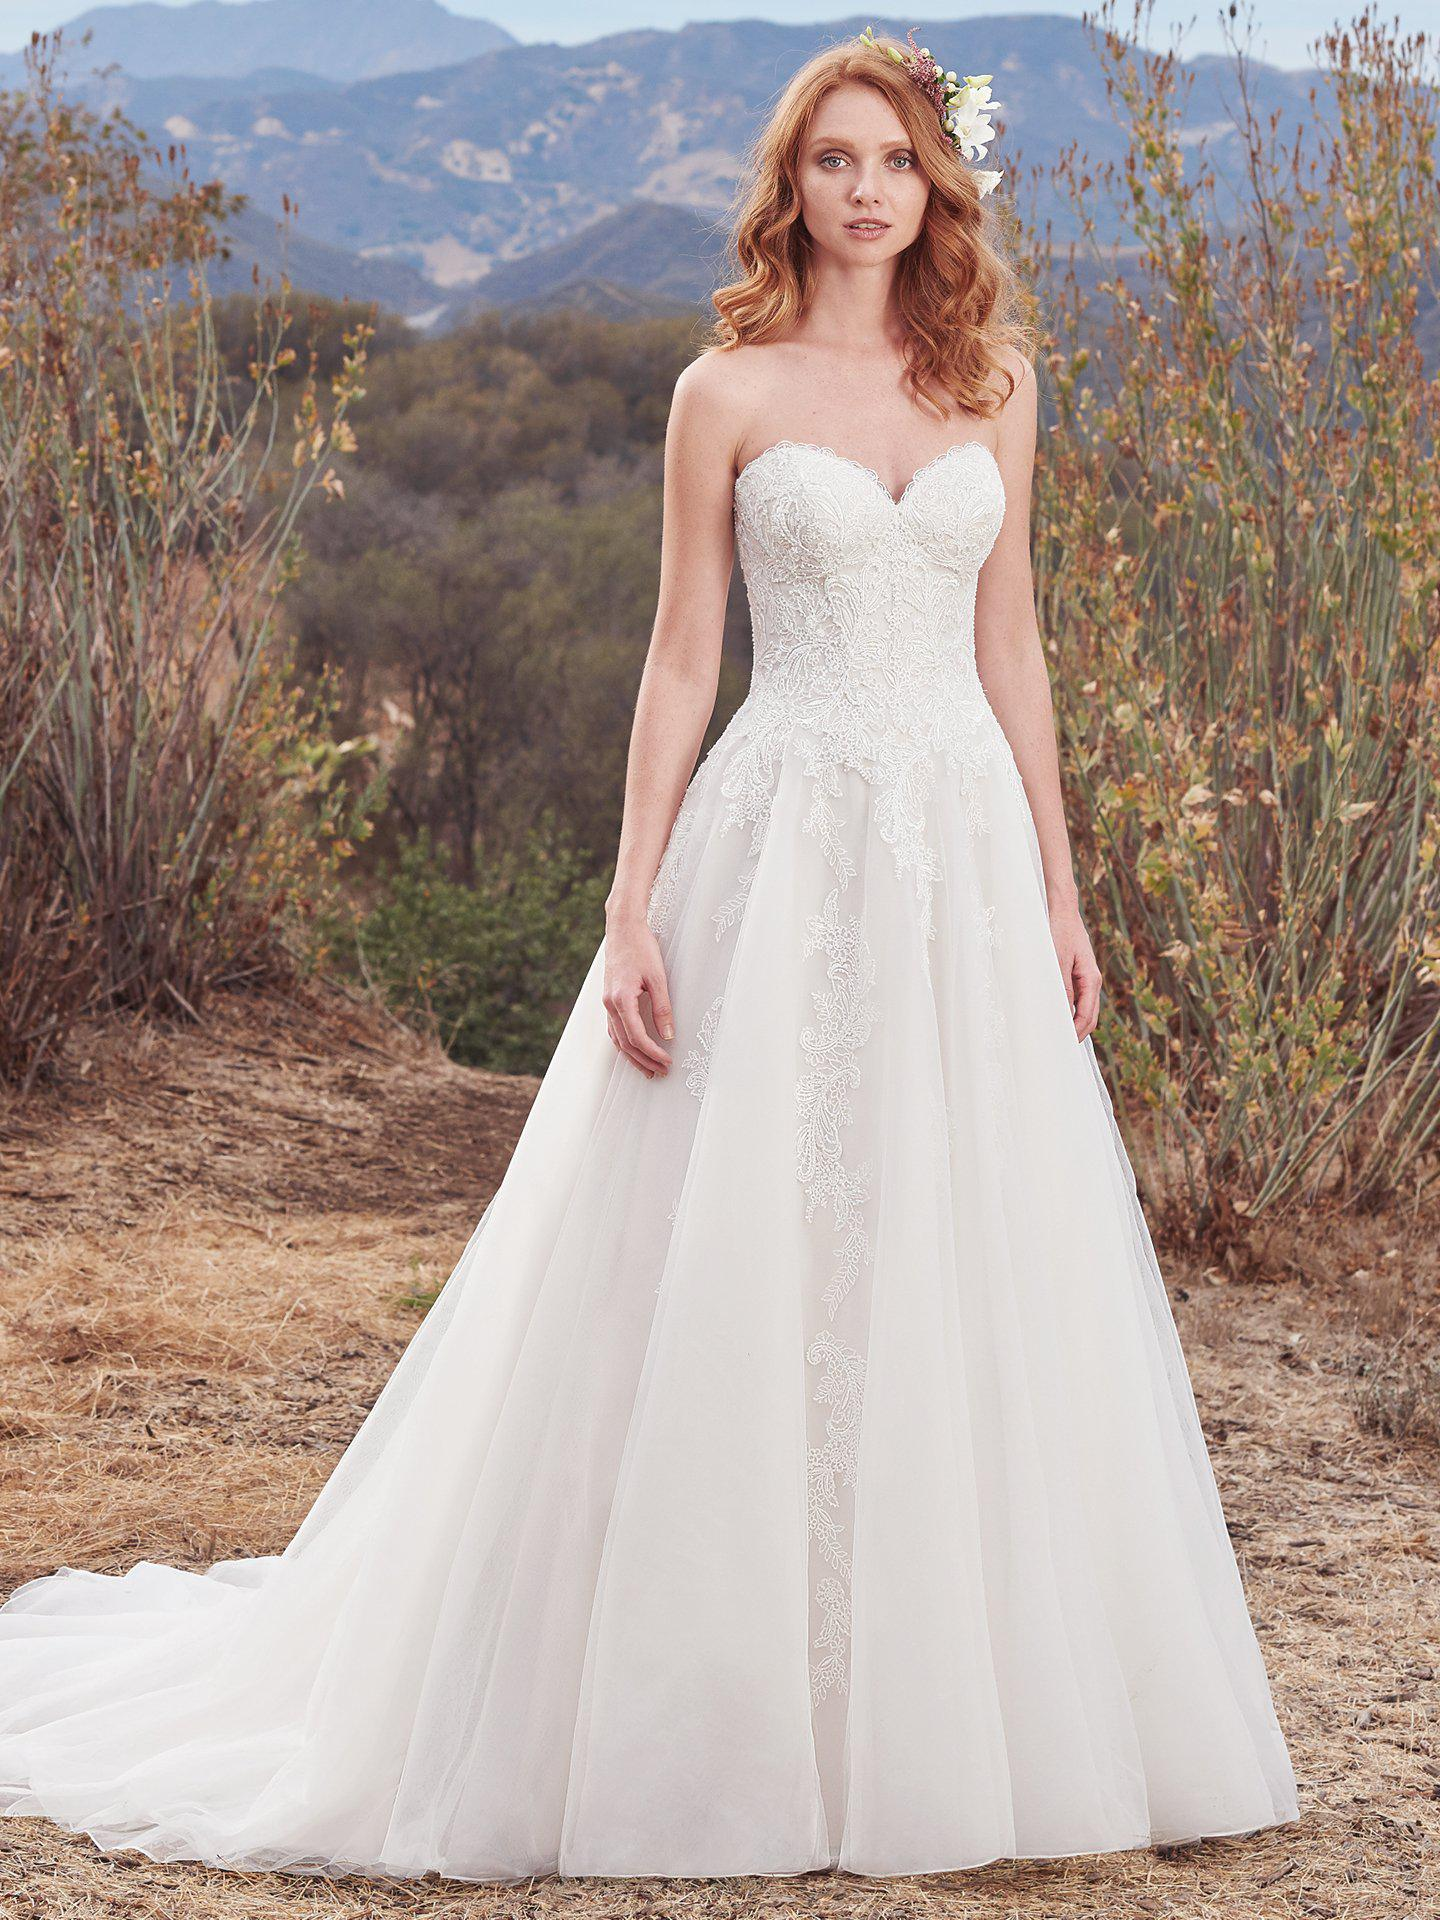 2018. Maggie Sottero - LORELAI, Ivory/overPearl:38